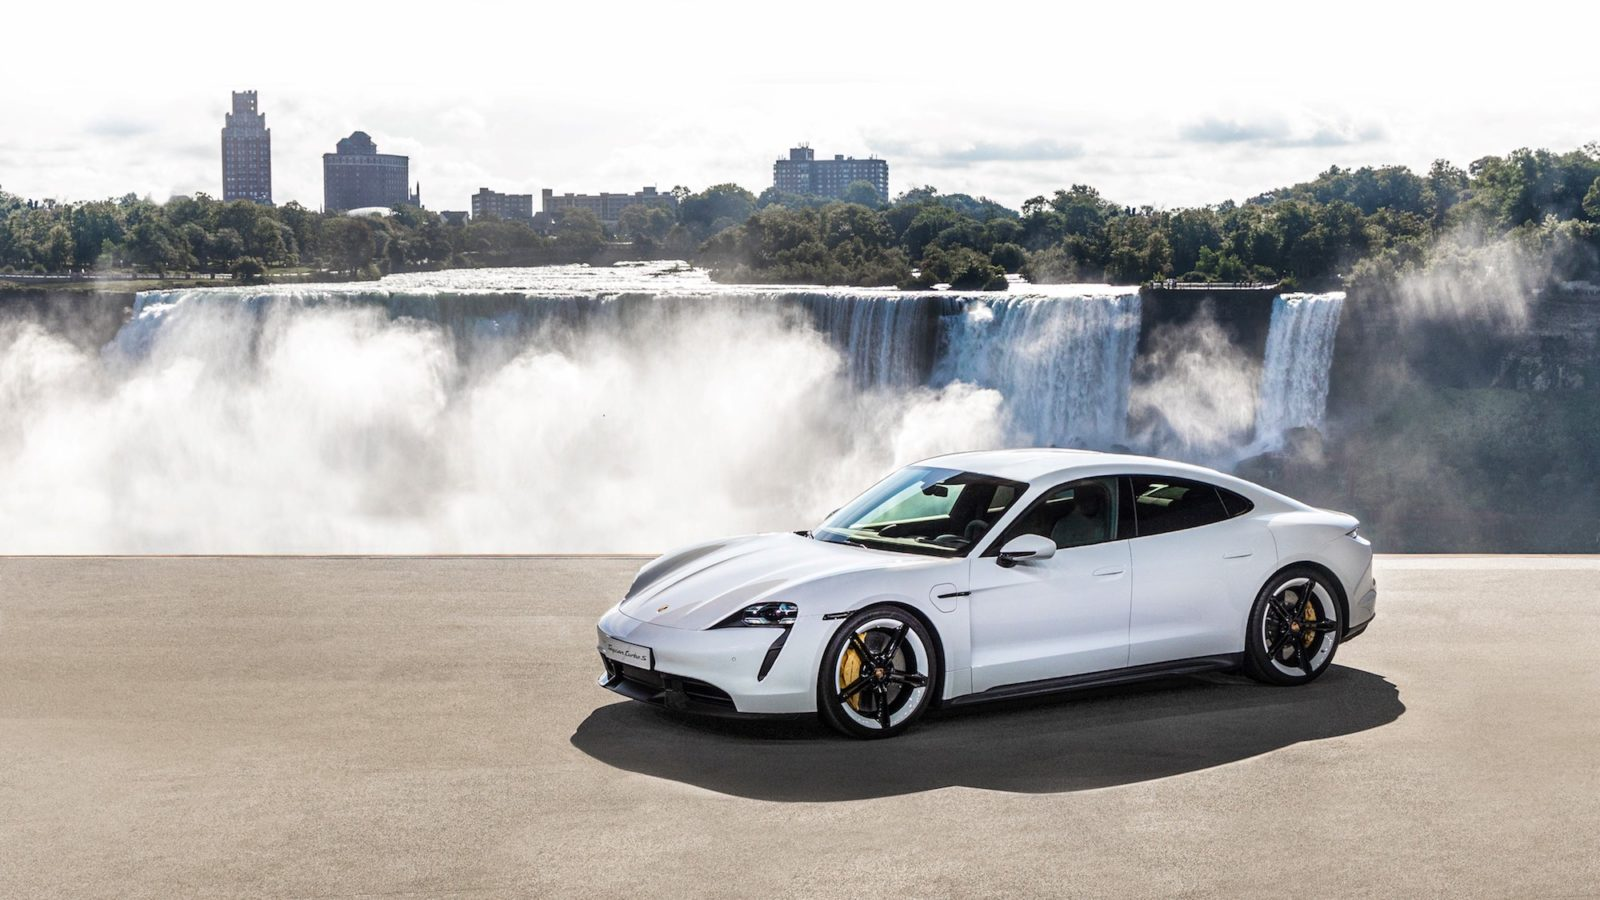 5 lesser-known facts about the 2020 Porsche Taycan to know